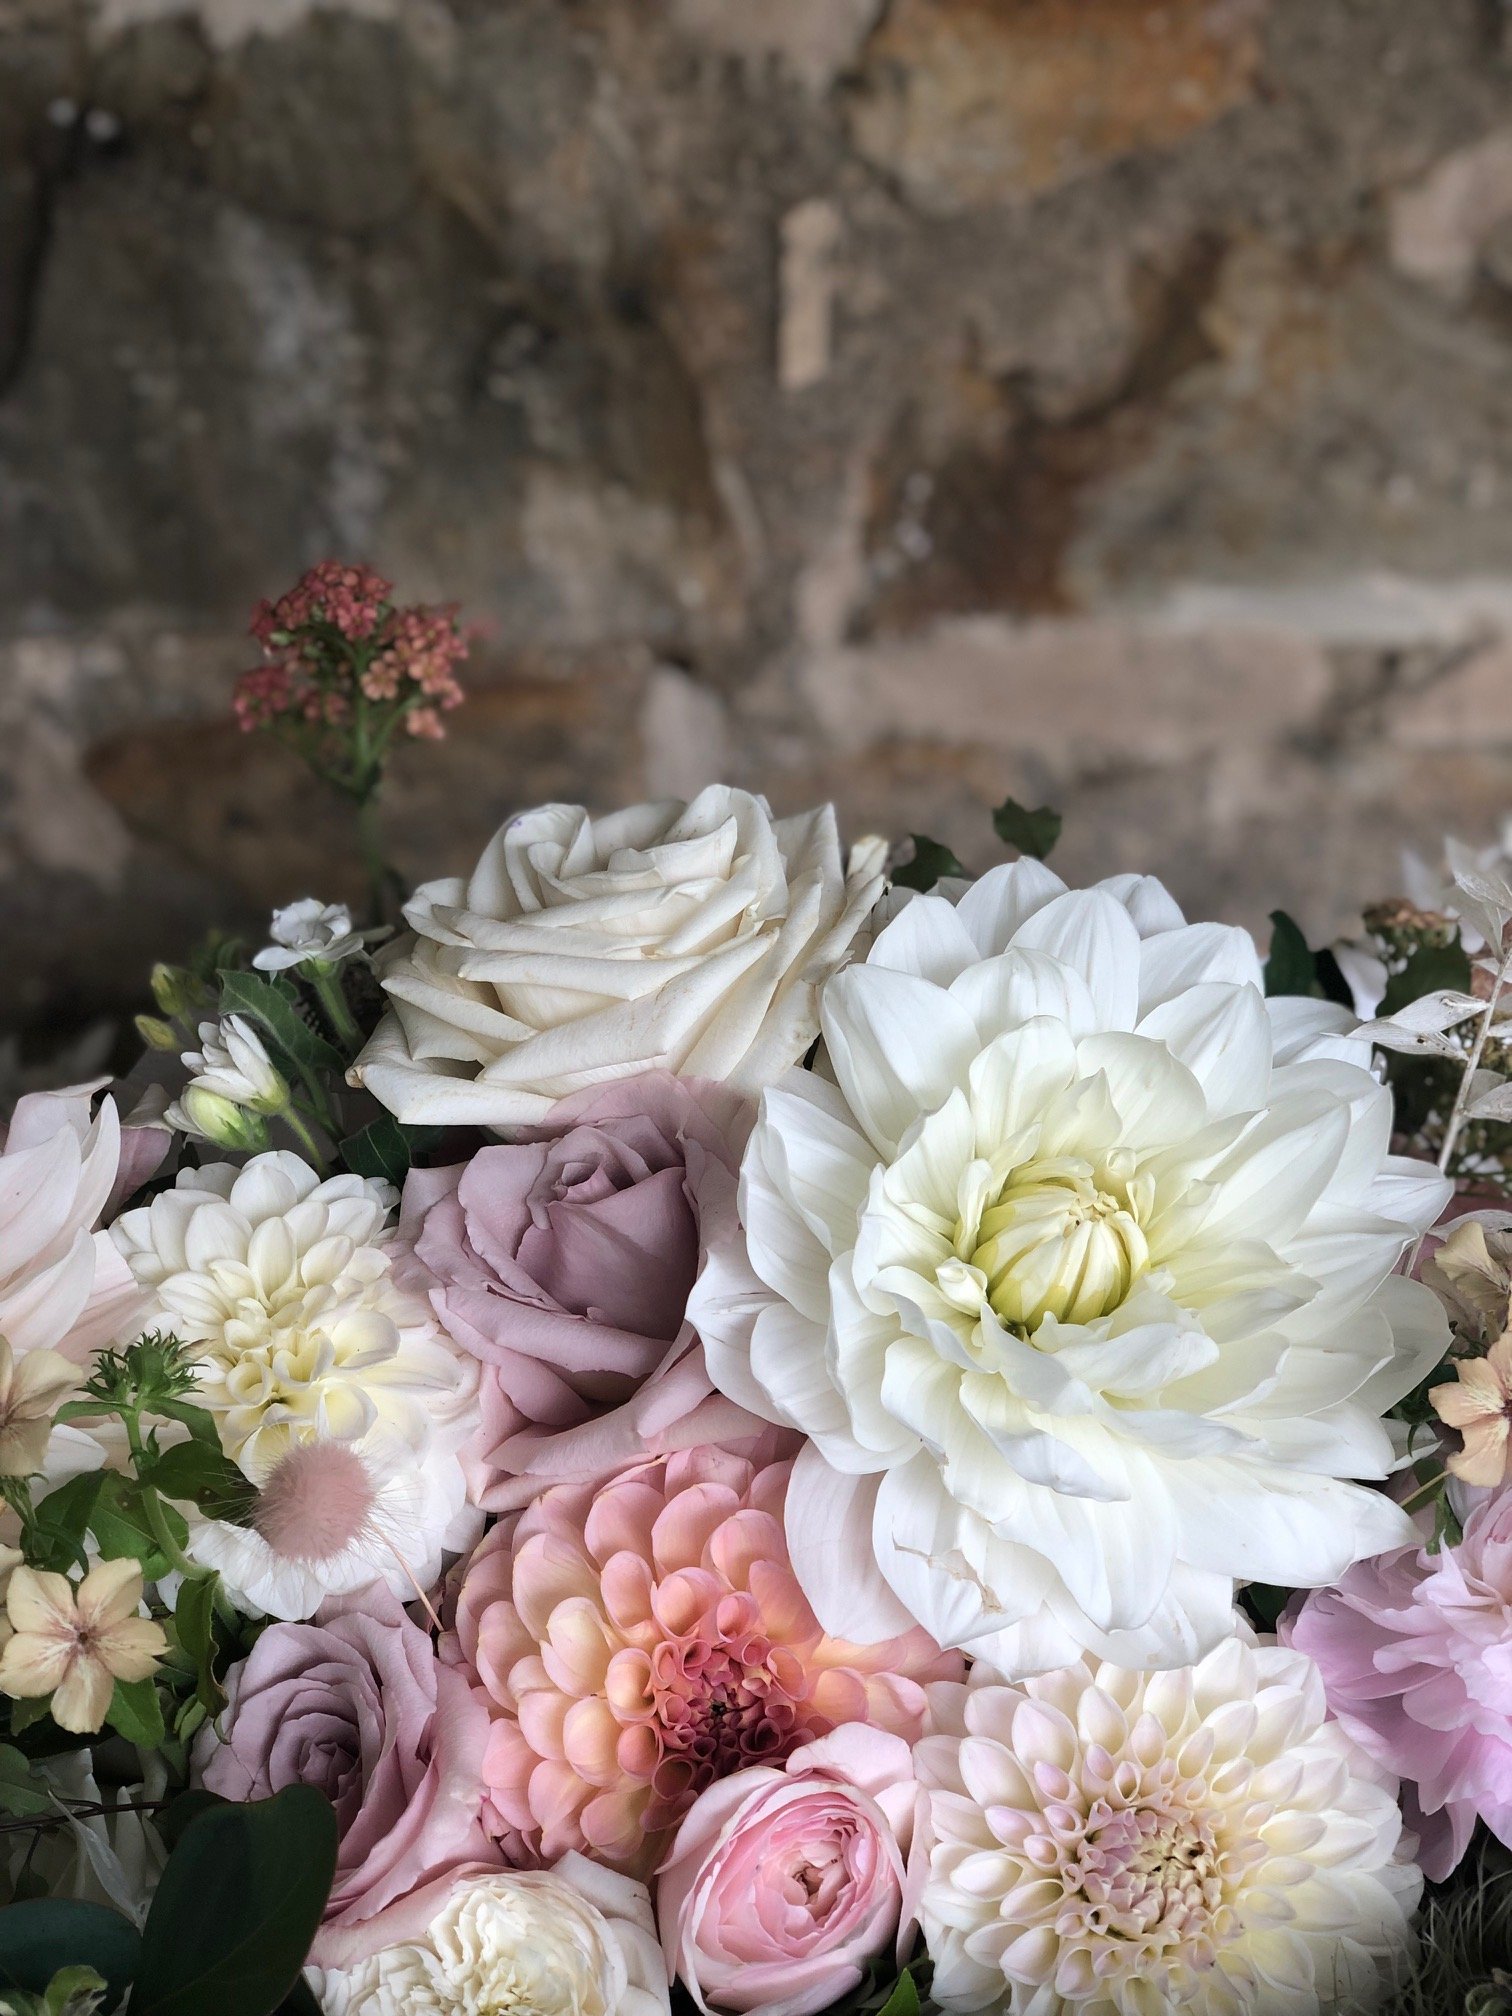 Laura is amazing!She was our celebrant back in March and I can't thank her enough for making the process so easy and relaxed!I would highly recommend her for anyone who wants a fun and friendly celebrant - Mr & Mrs Tomlin